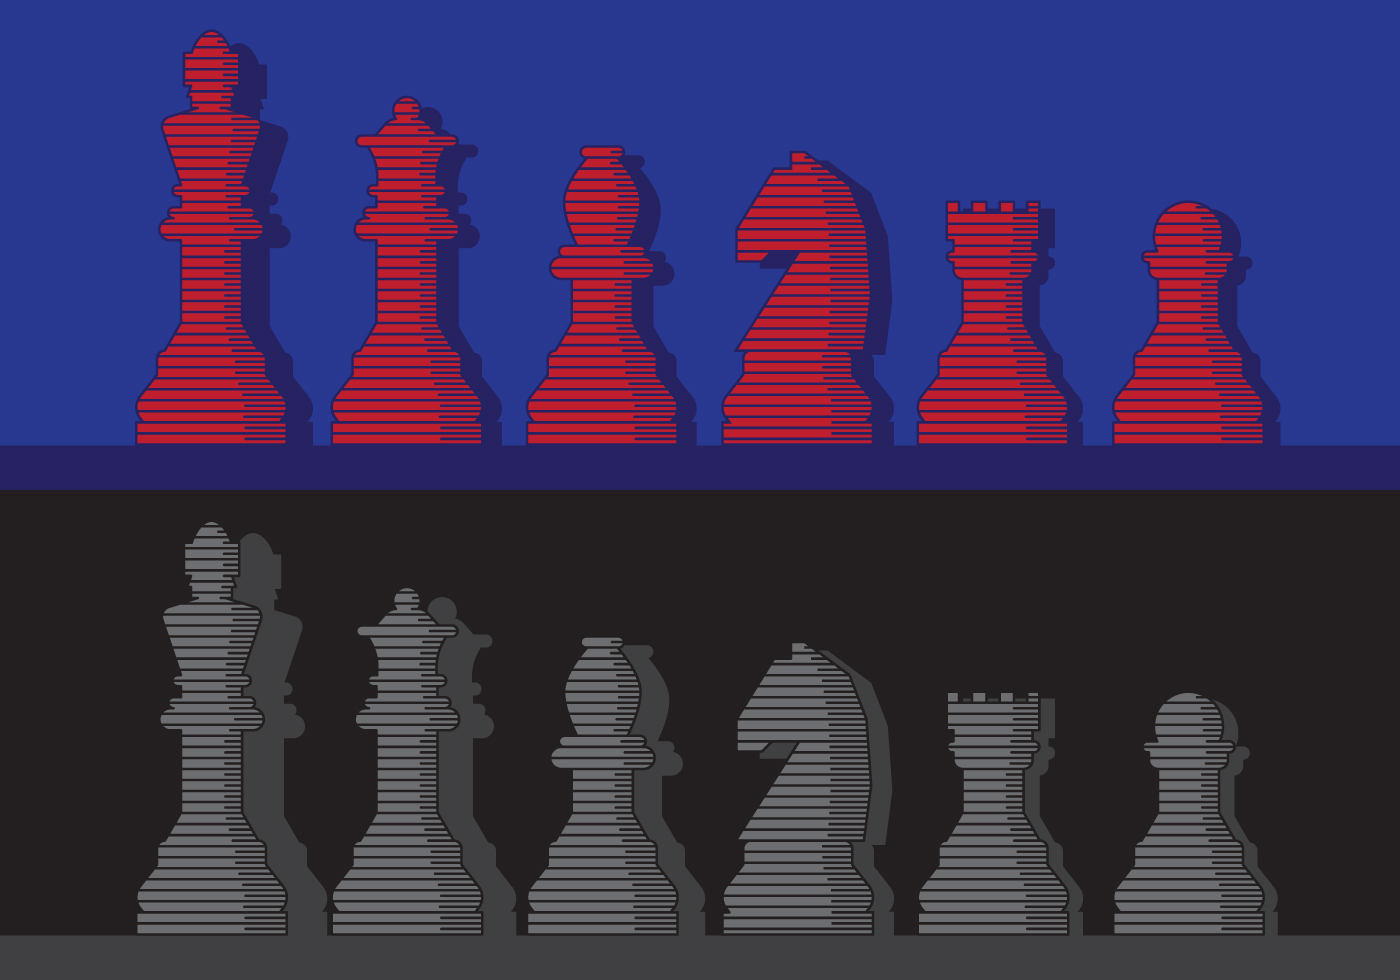 Chess Background Free Vector Art - (36624 Free Downloads)